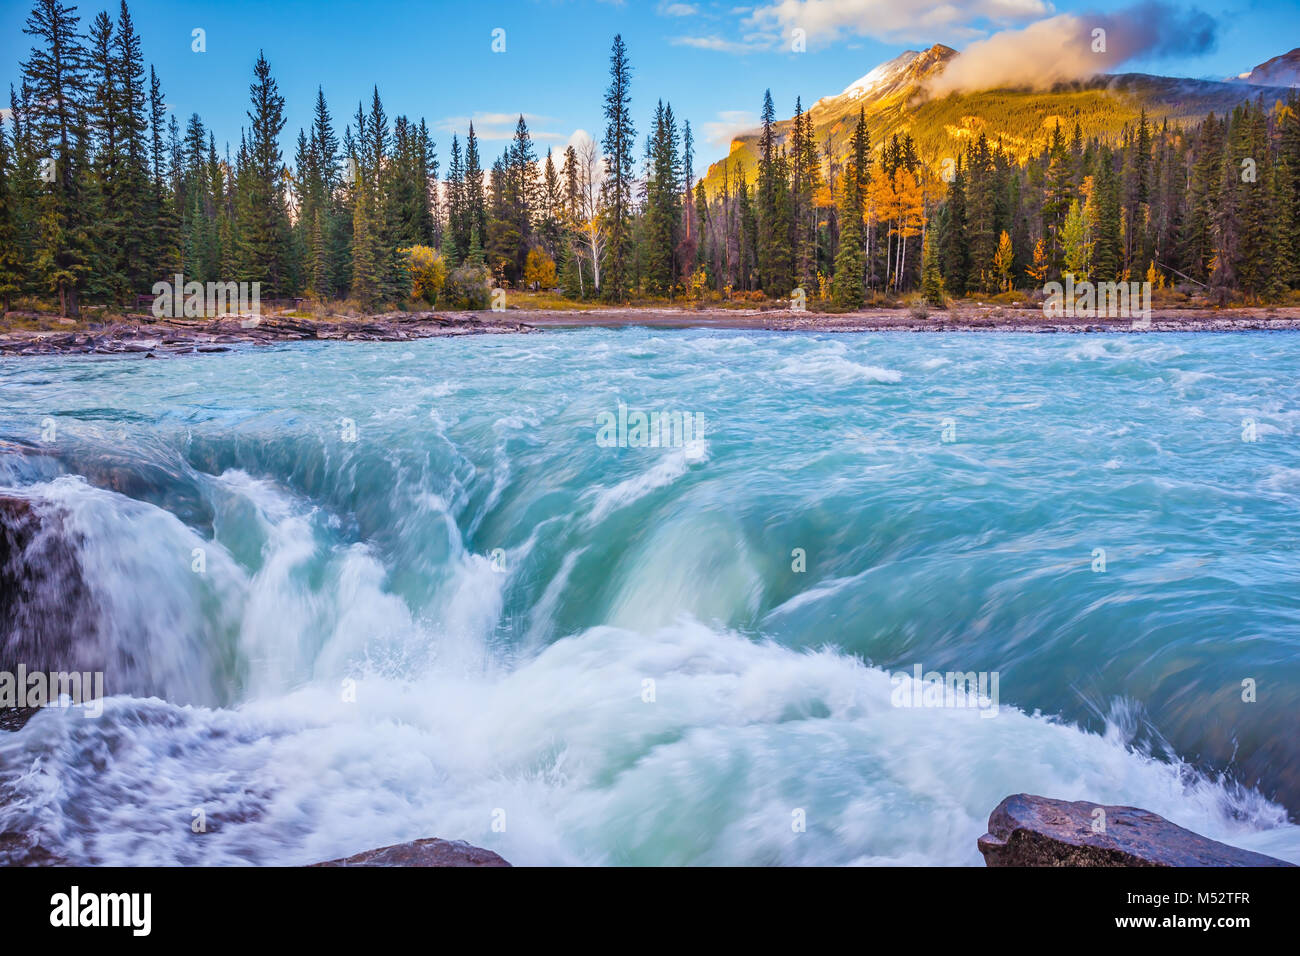 Emerald water roars and foams - Stock Image